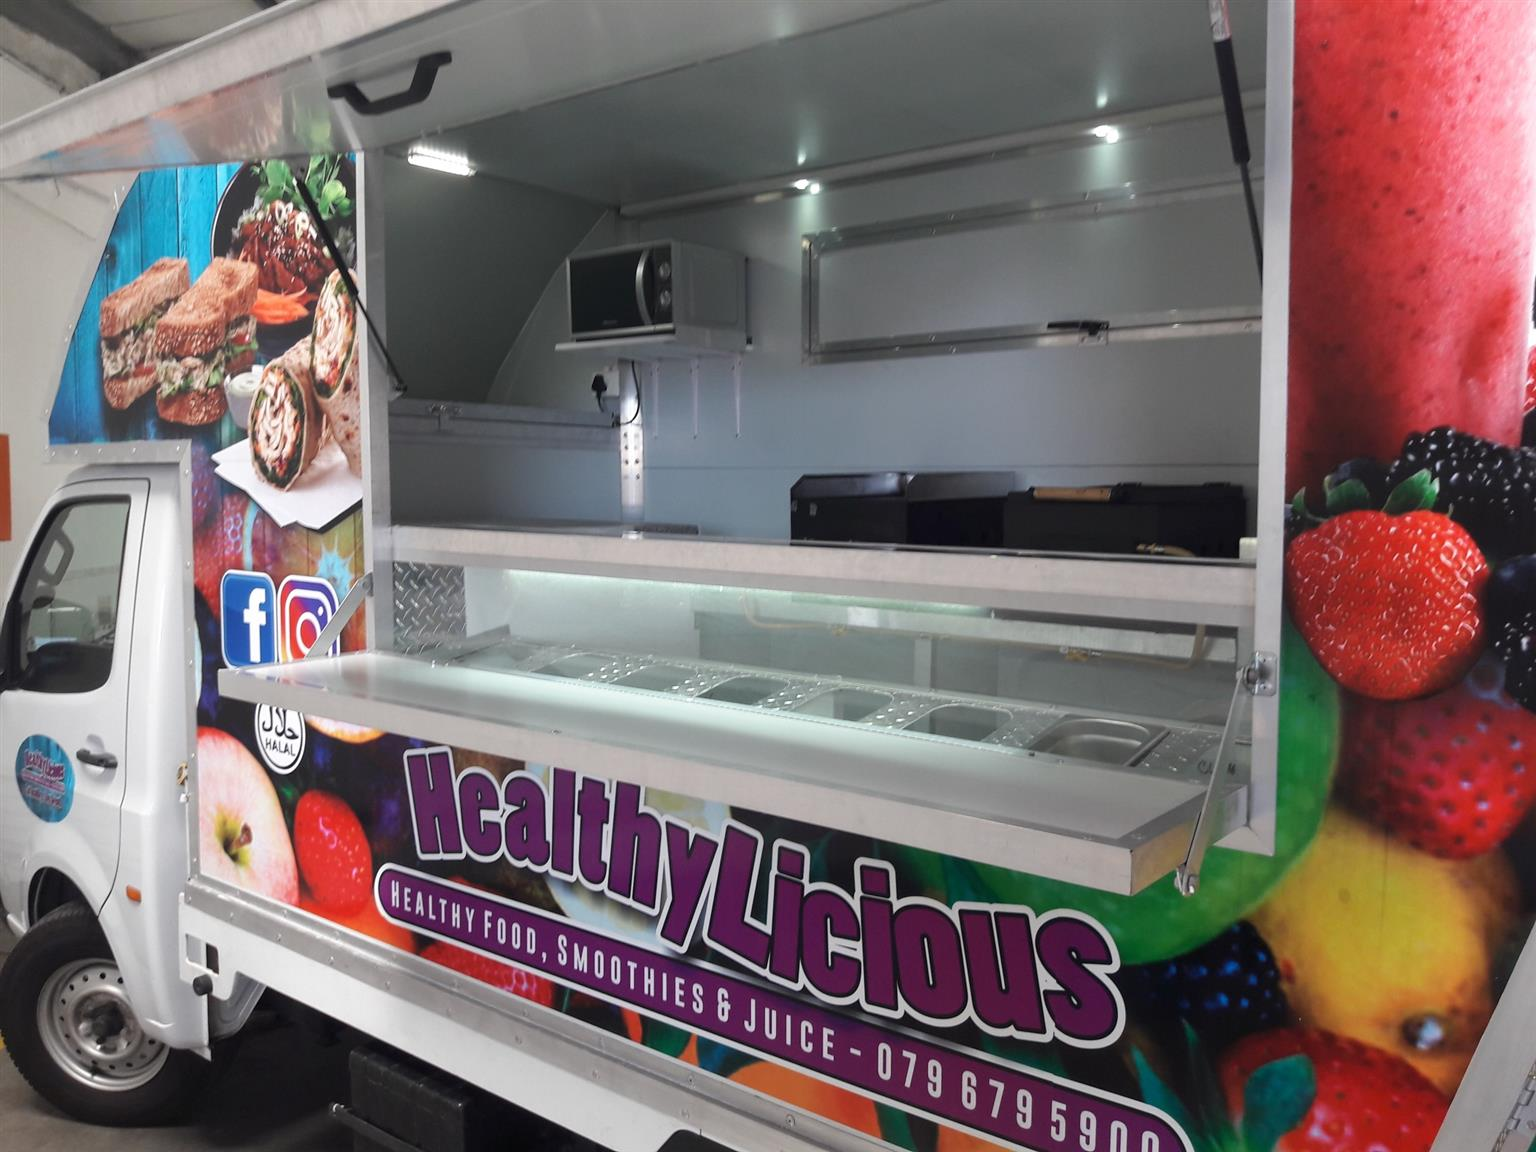 Food Trucks For Sale - Spring Food Truckers Special - Own Business opportunity!